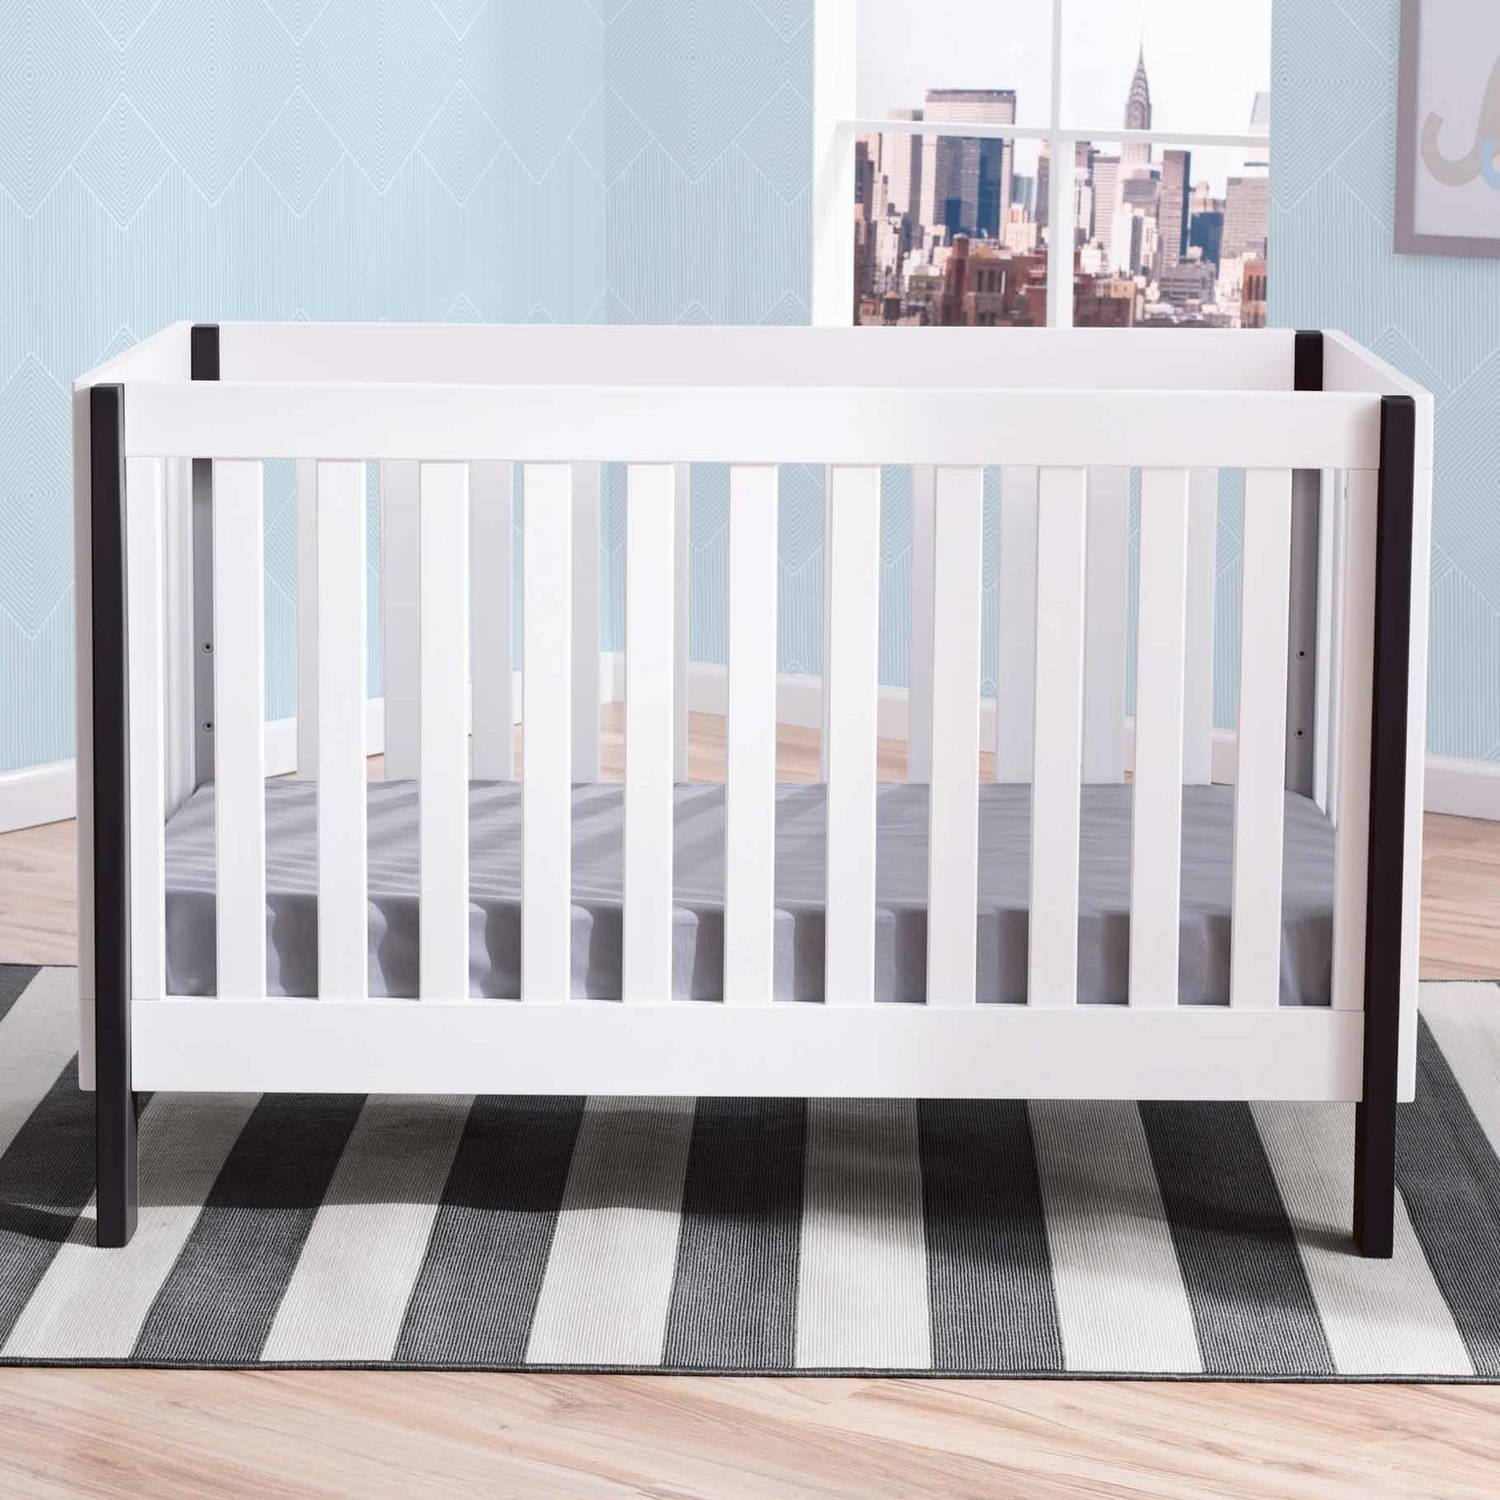 Cheapest Place To Buy Baby Furniture #32: Baby Furniture - Walmart.com